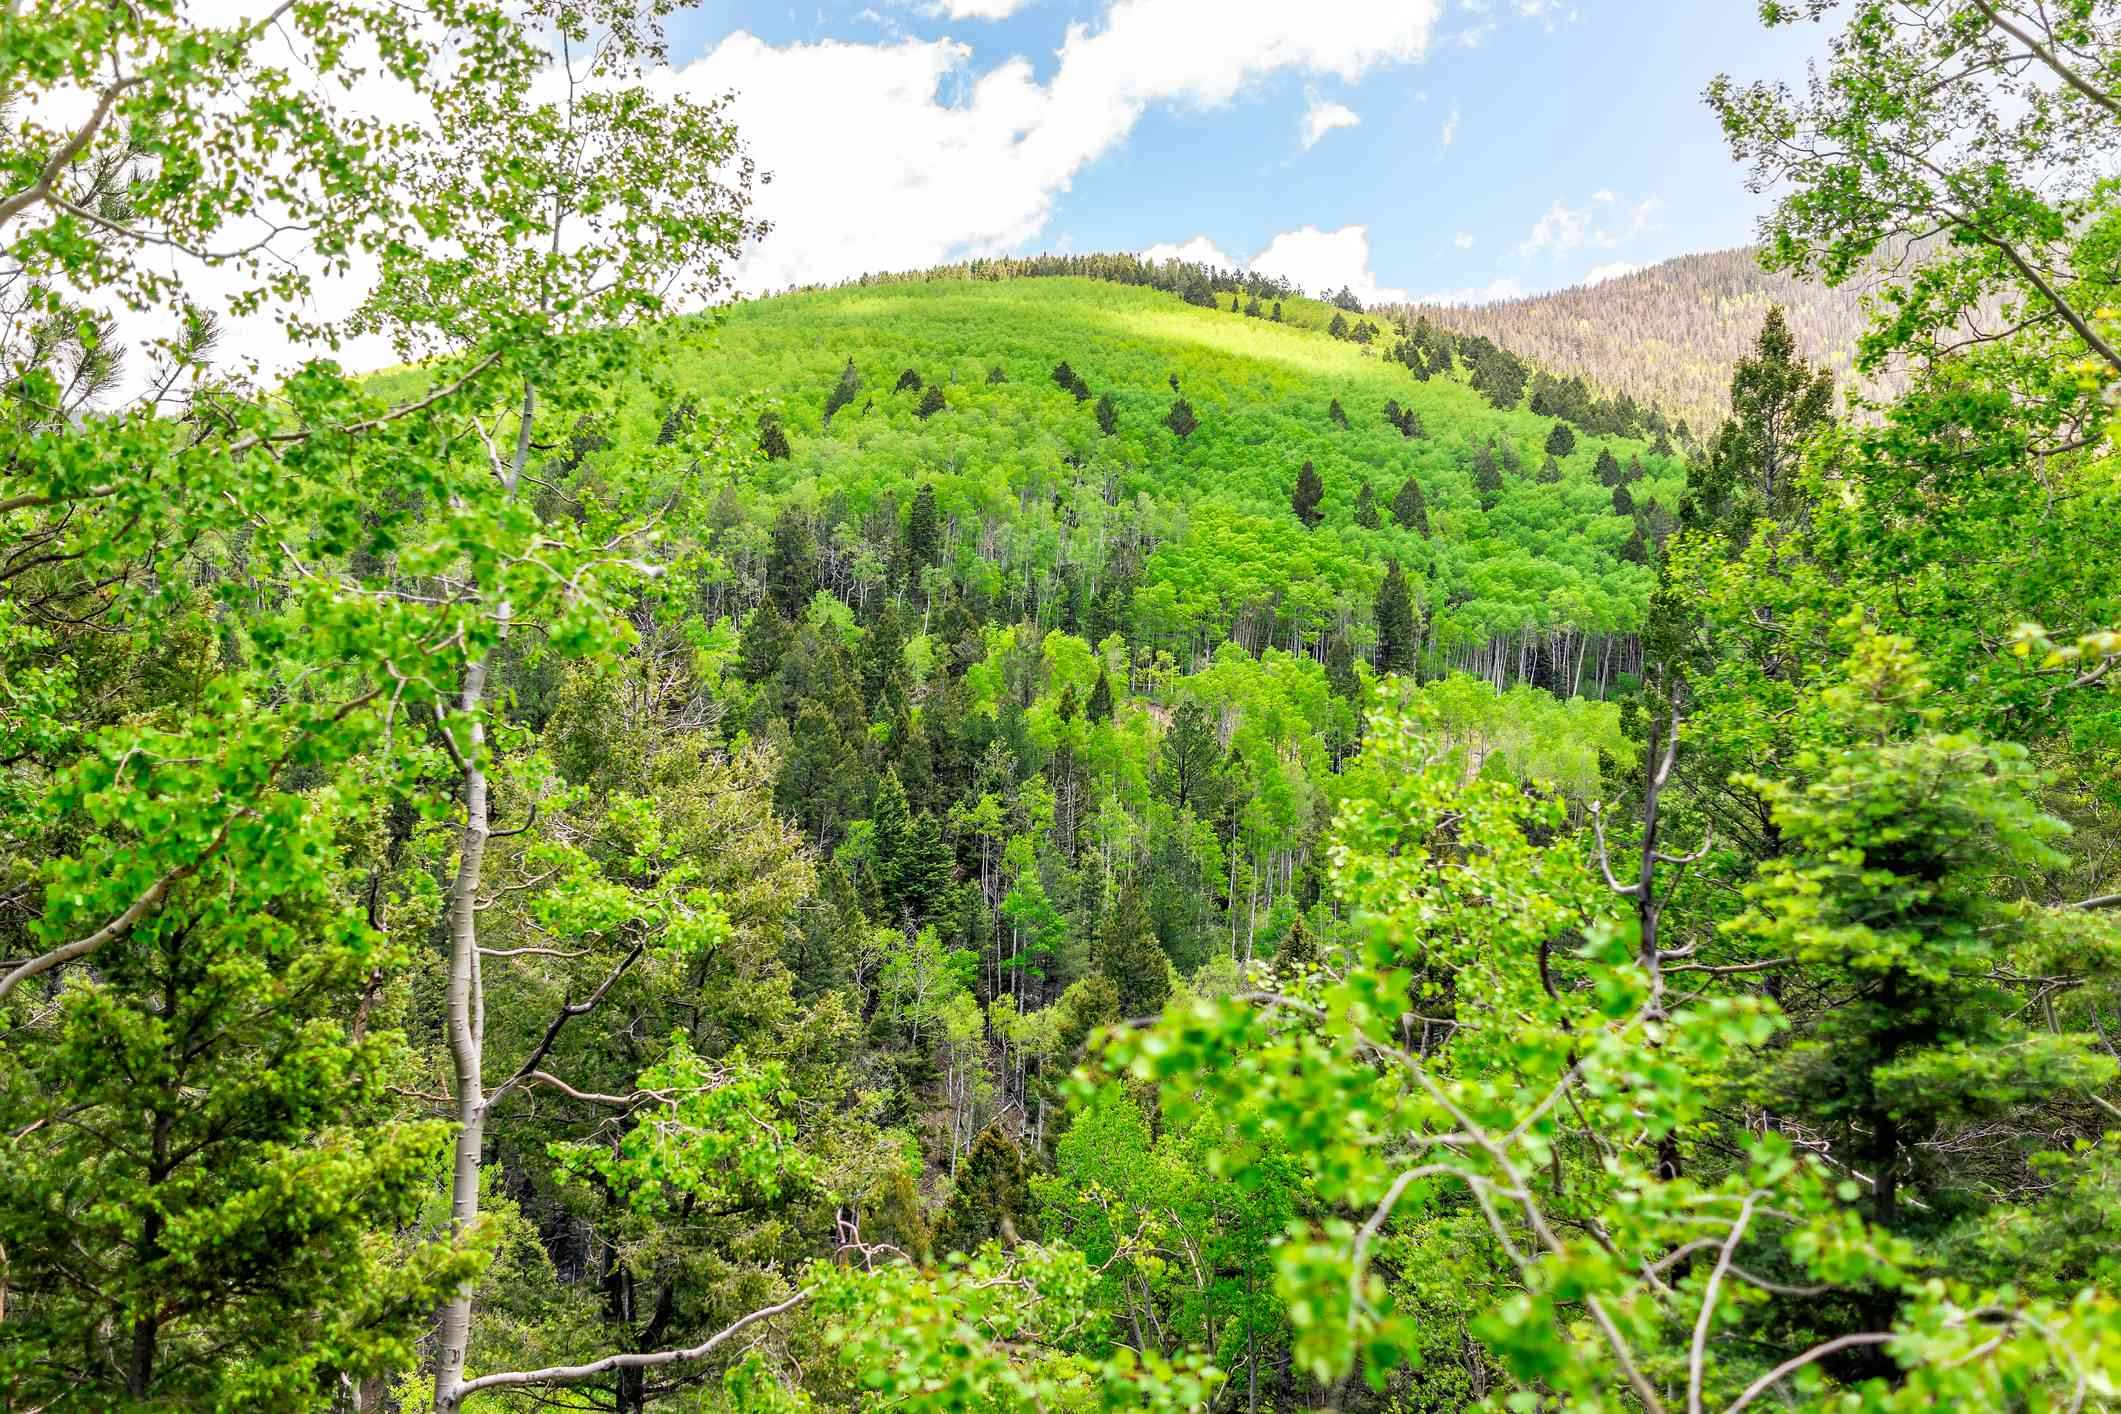 Santa Fe National Forest Sangre de Cristo mountains with green aspen trees in spring or summer and peak